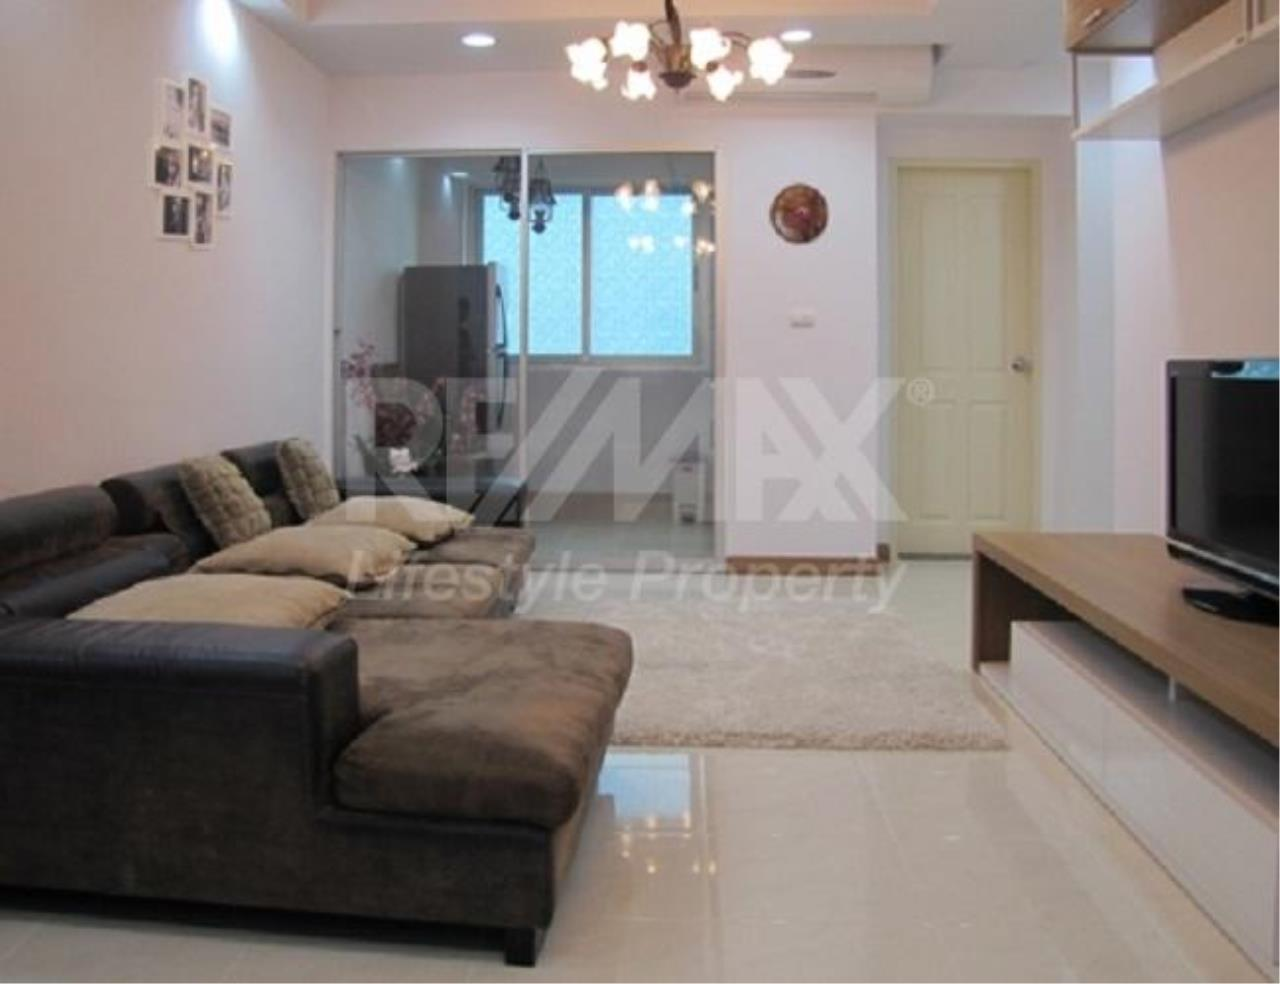 RE/MAX LifeStyle Property Agency's Supalai Park Ekkamai-Thonglor 12